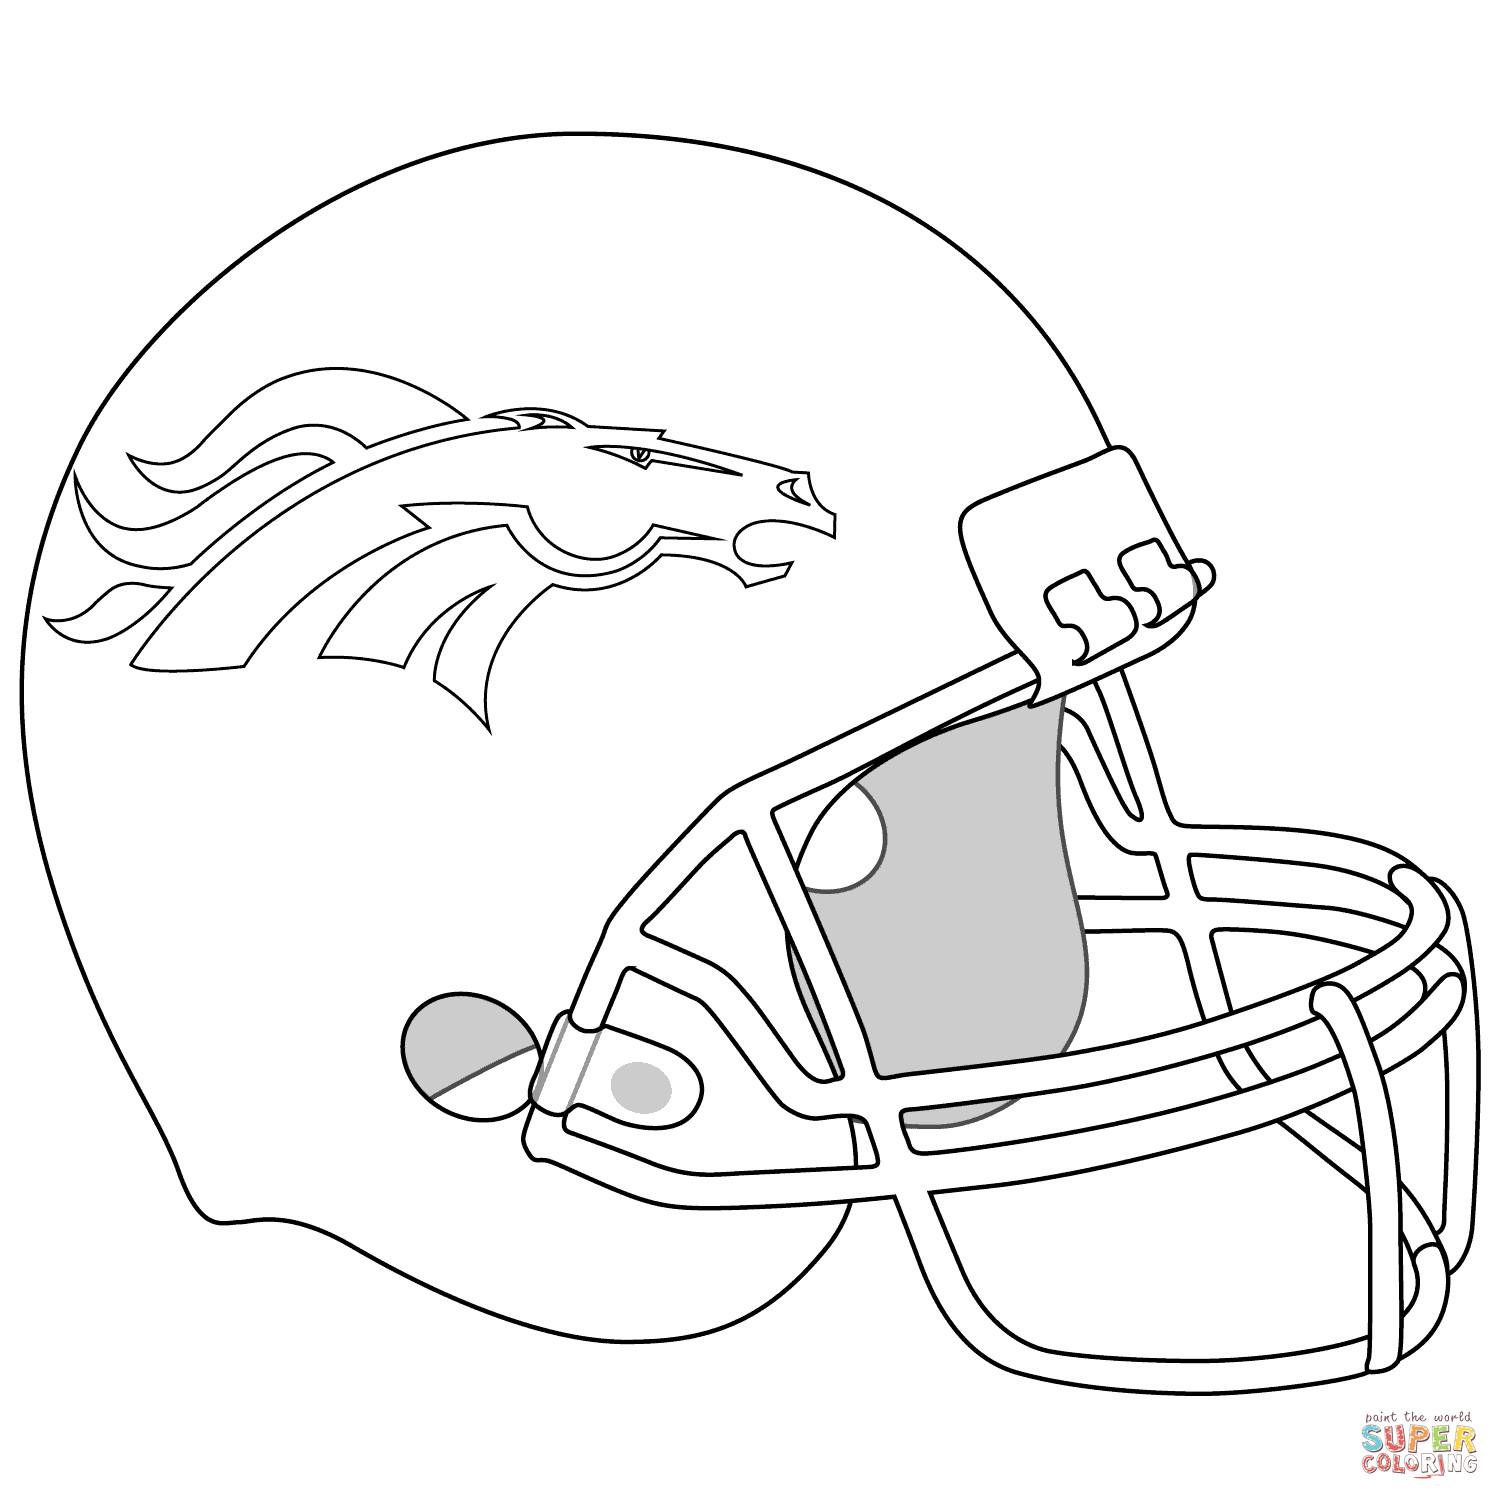 seahawks coloring pages seattle seahawks logo coloring page free nfl coloring pages coloring seahawks